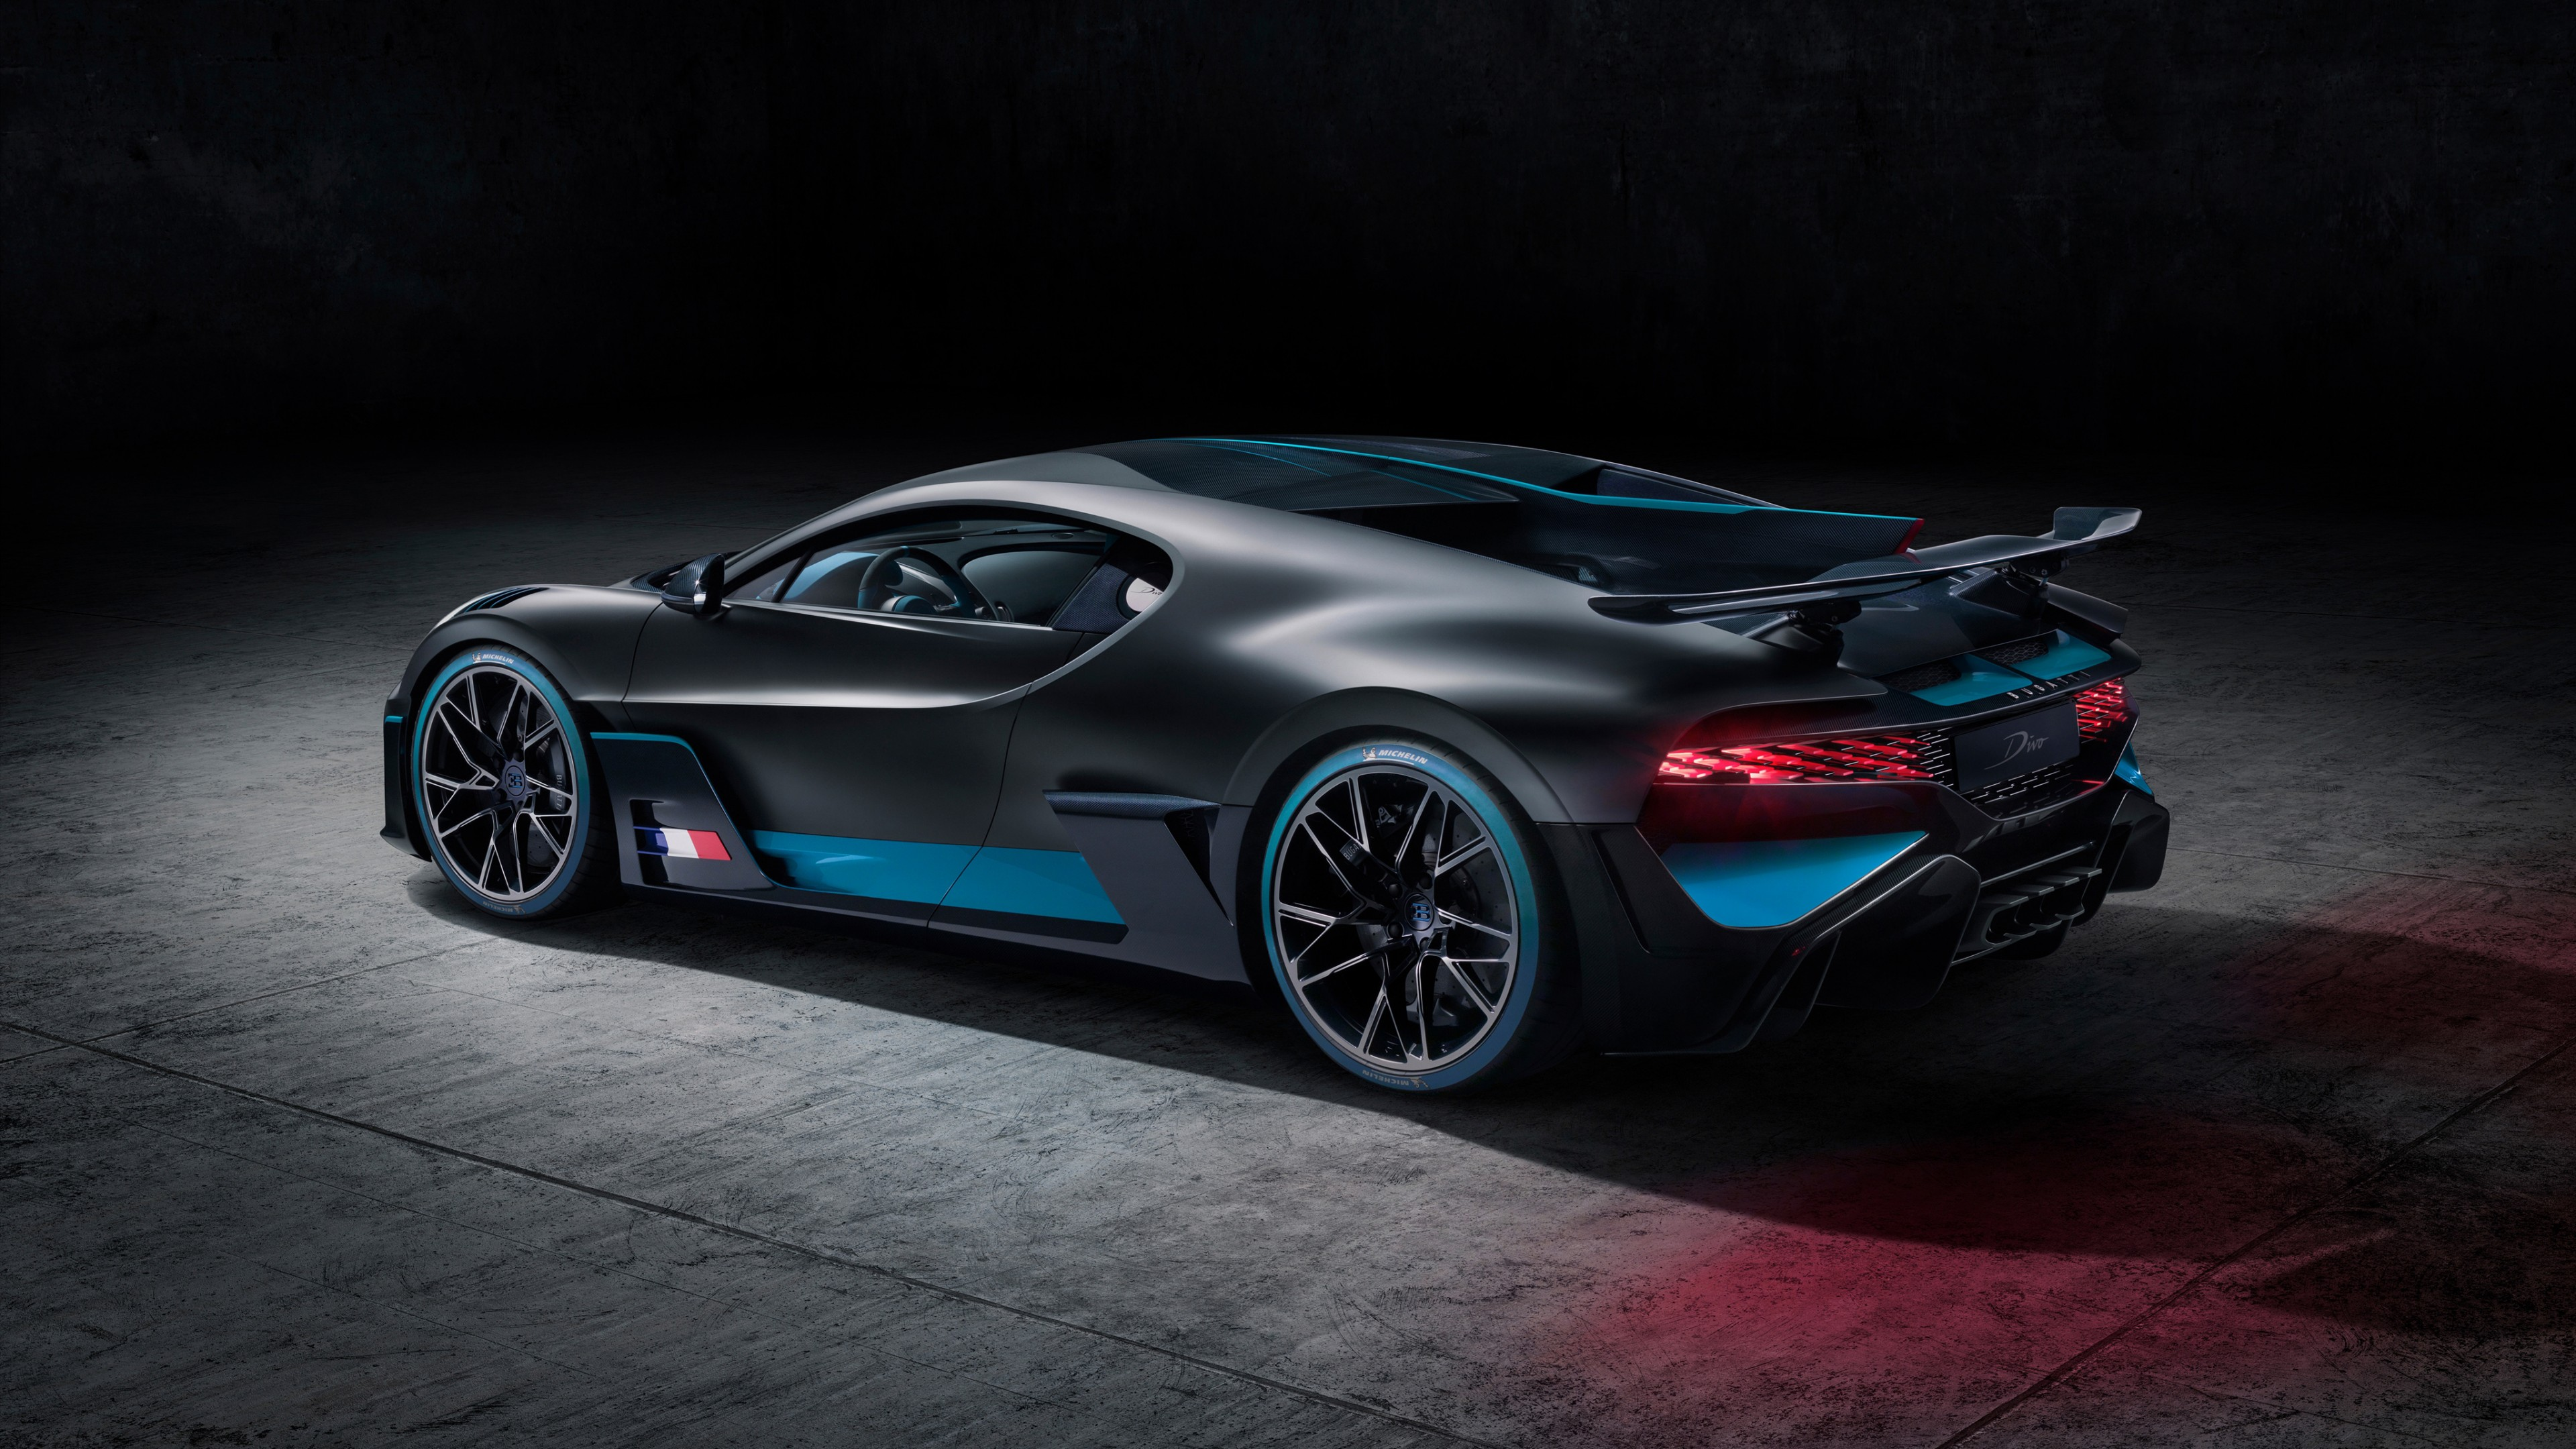 Top Hd Wallpapers Cars Wallpapers Desktop Hd: 2019 Bugatti Divo 4K 12 Wallpaper